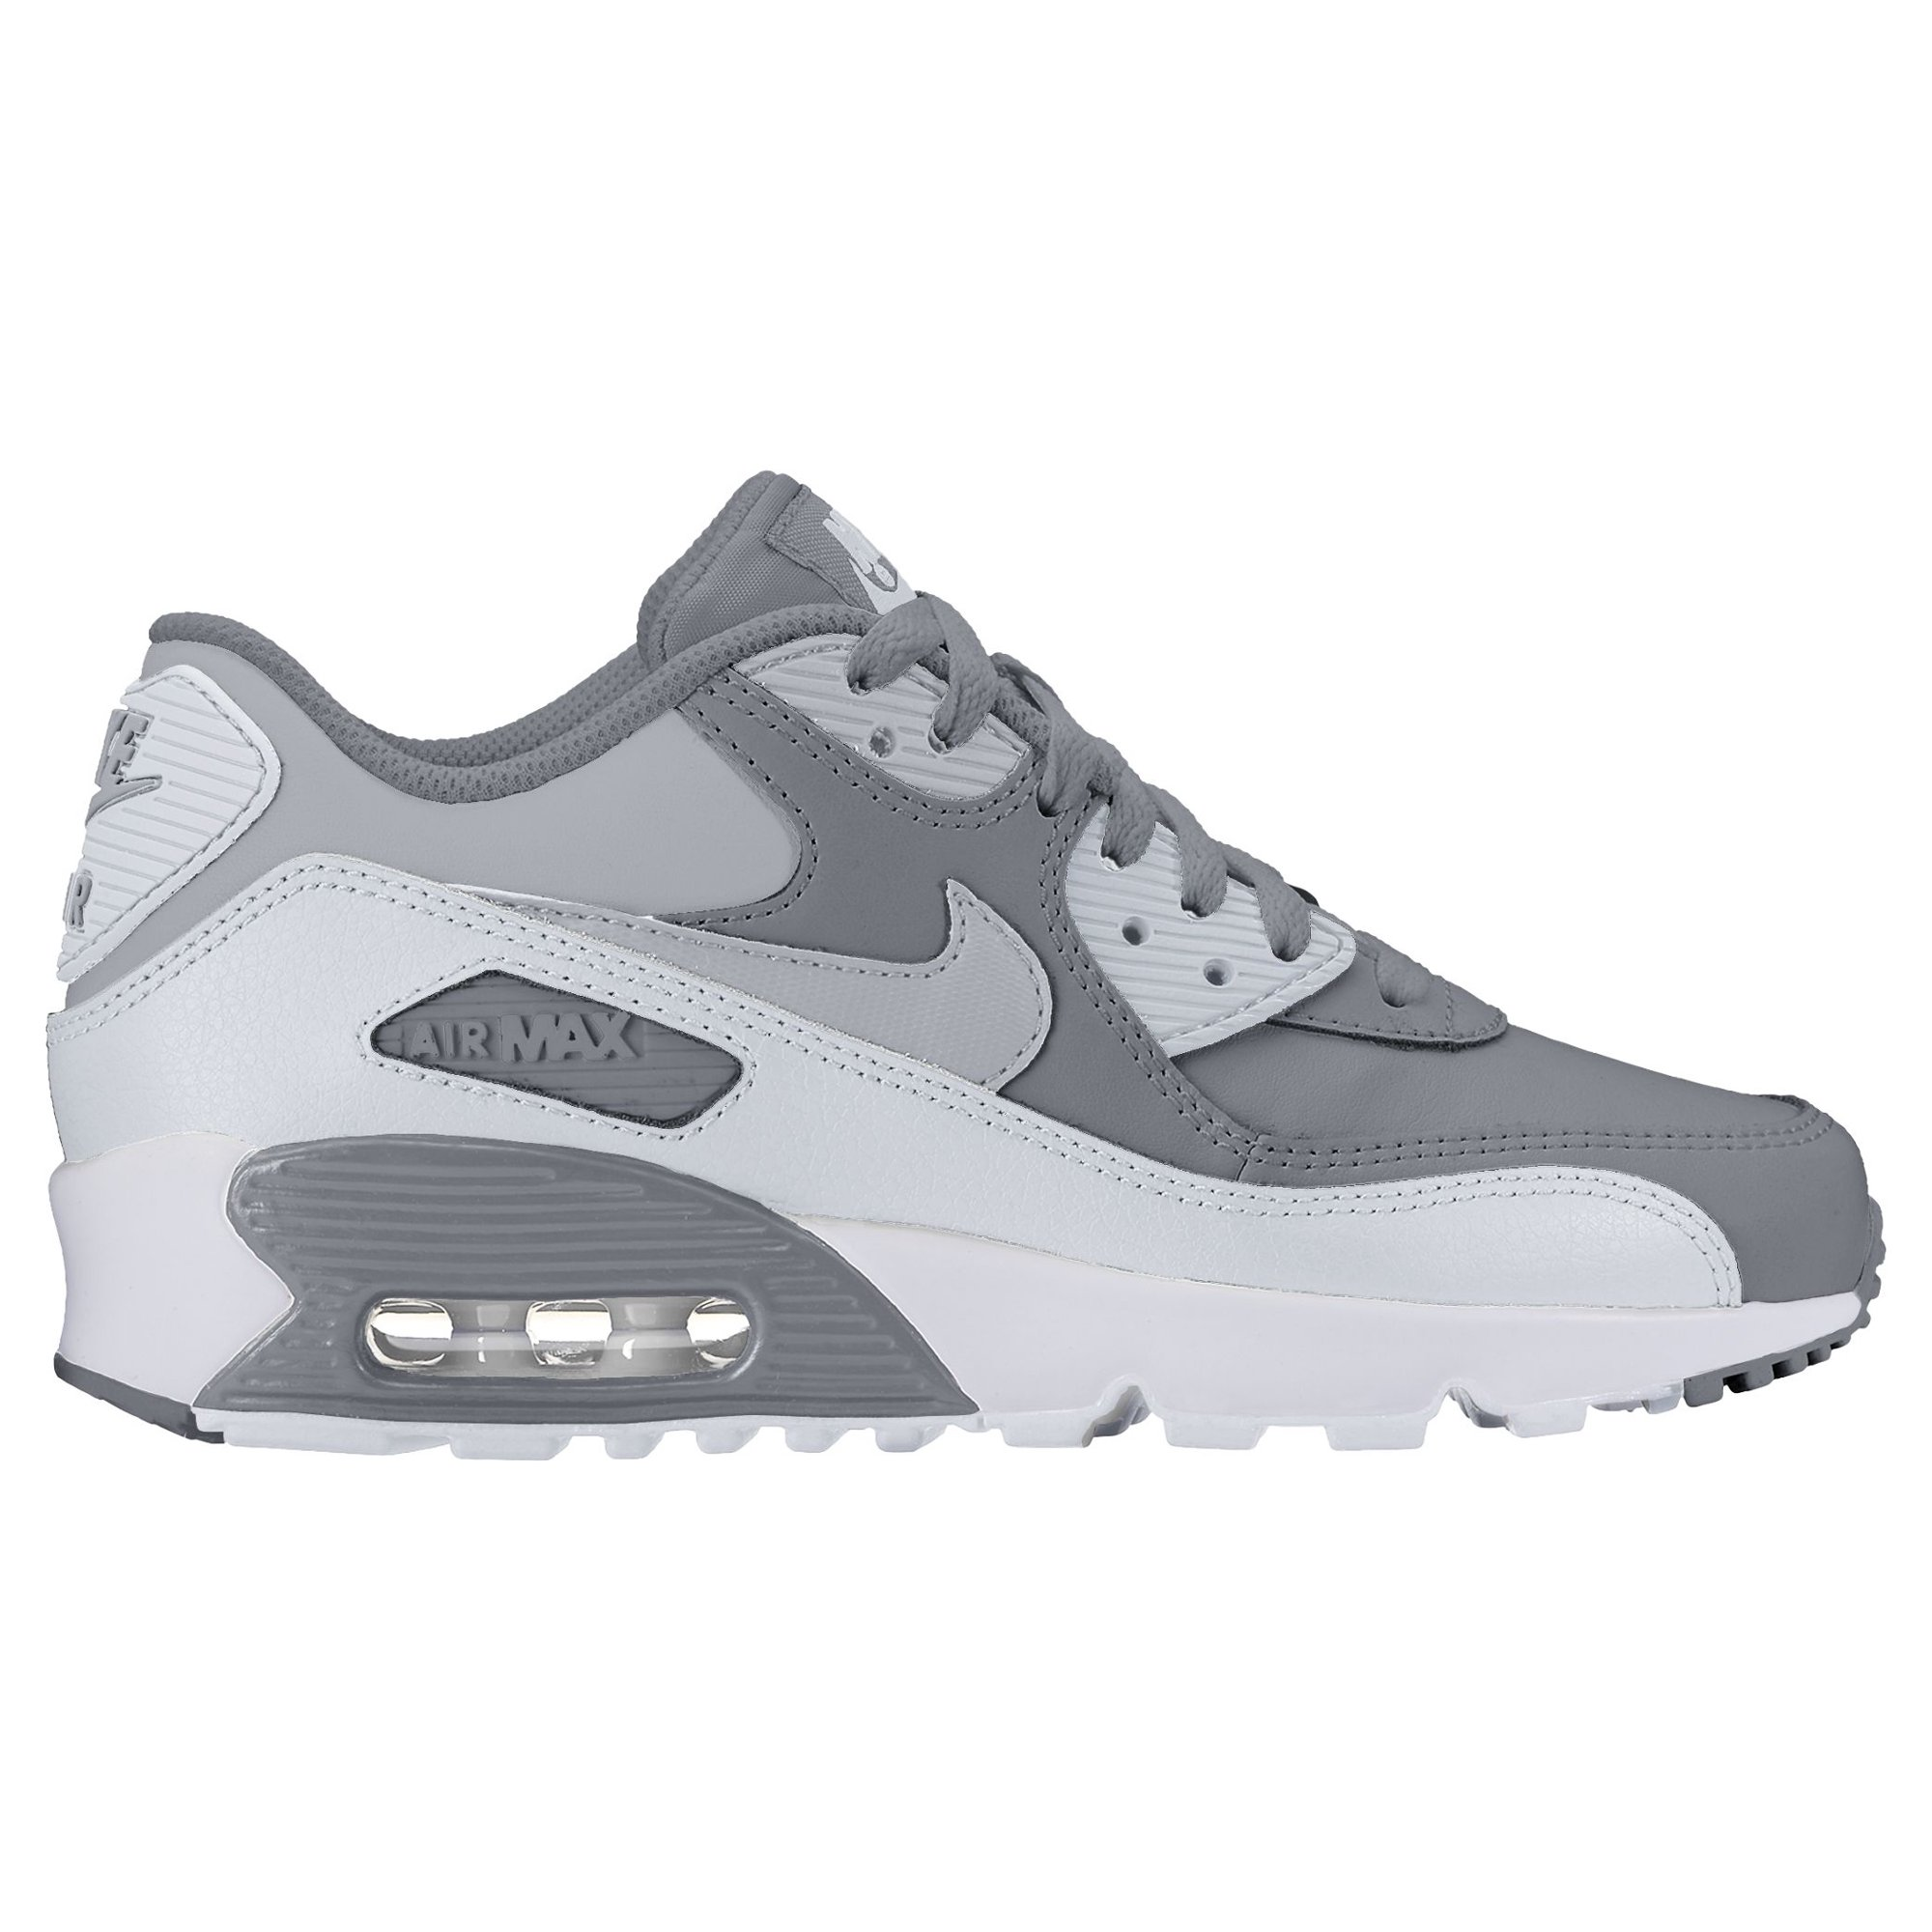 9983a198f1c8 Nike Boy s Air Max 90 Leather (GS) Shoe Cool Grey Wolf Grey-Pure Platinum- White 6Y